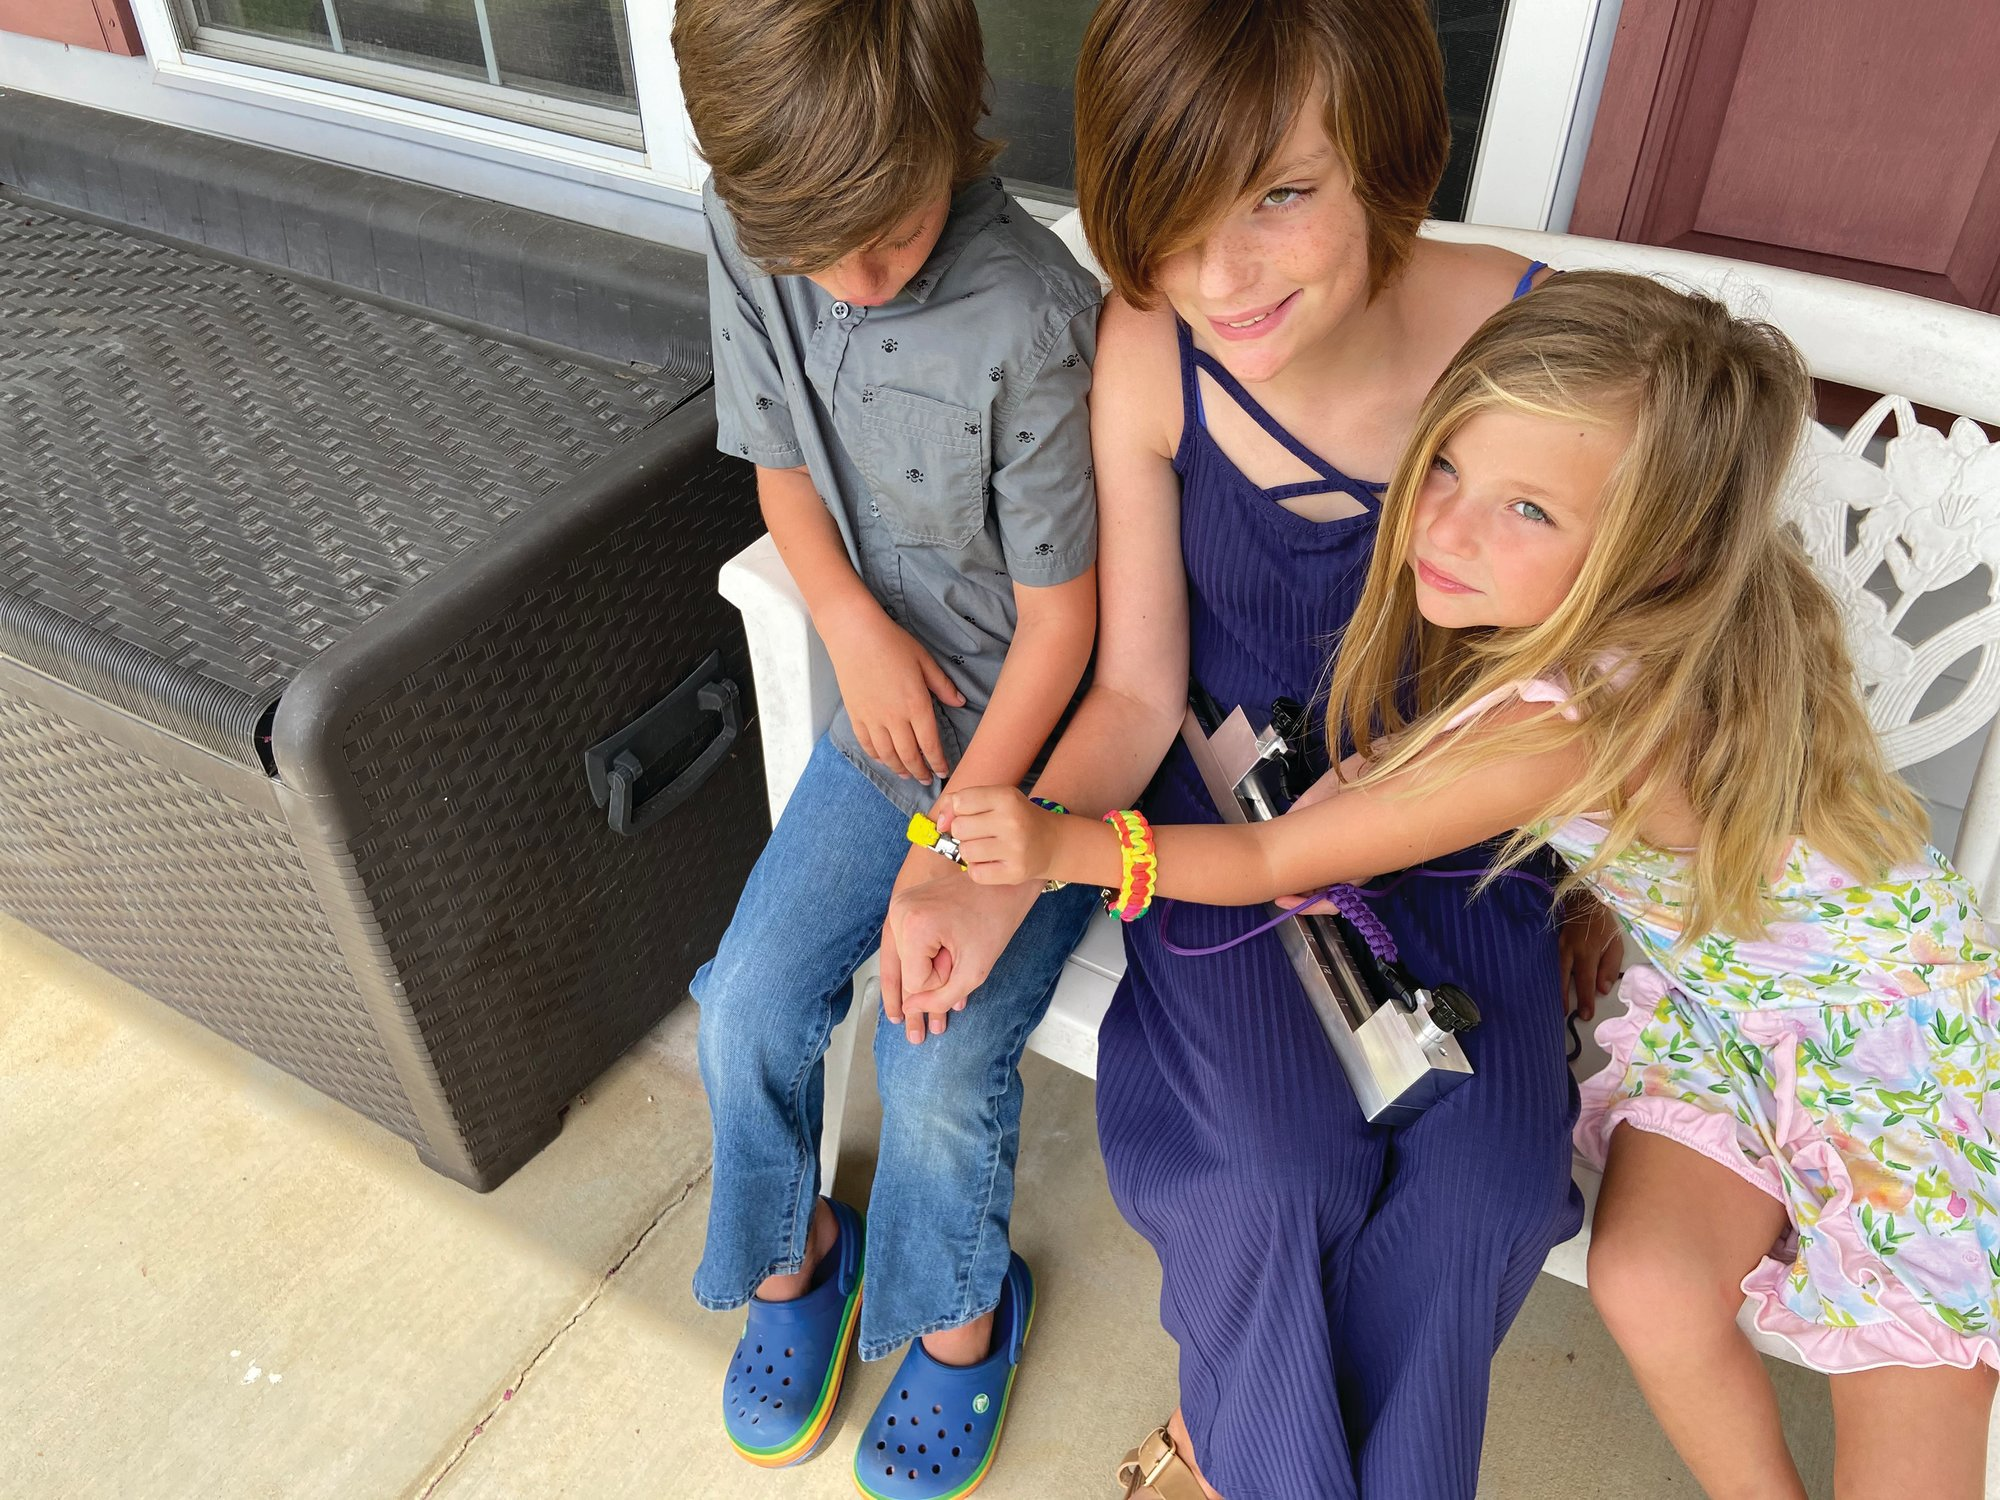 Lynzie's brother Tripp and her sister Kora join her to show off their paracord bracelets, all made by Lynzie.